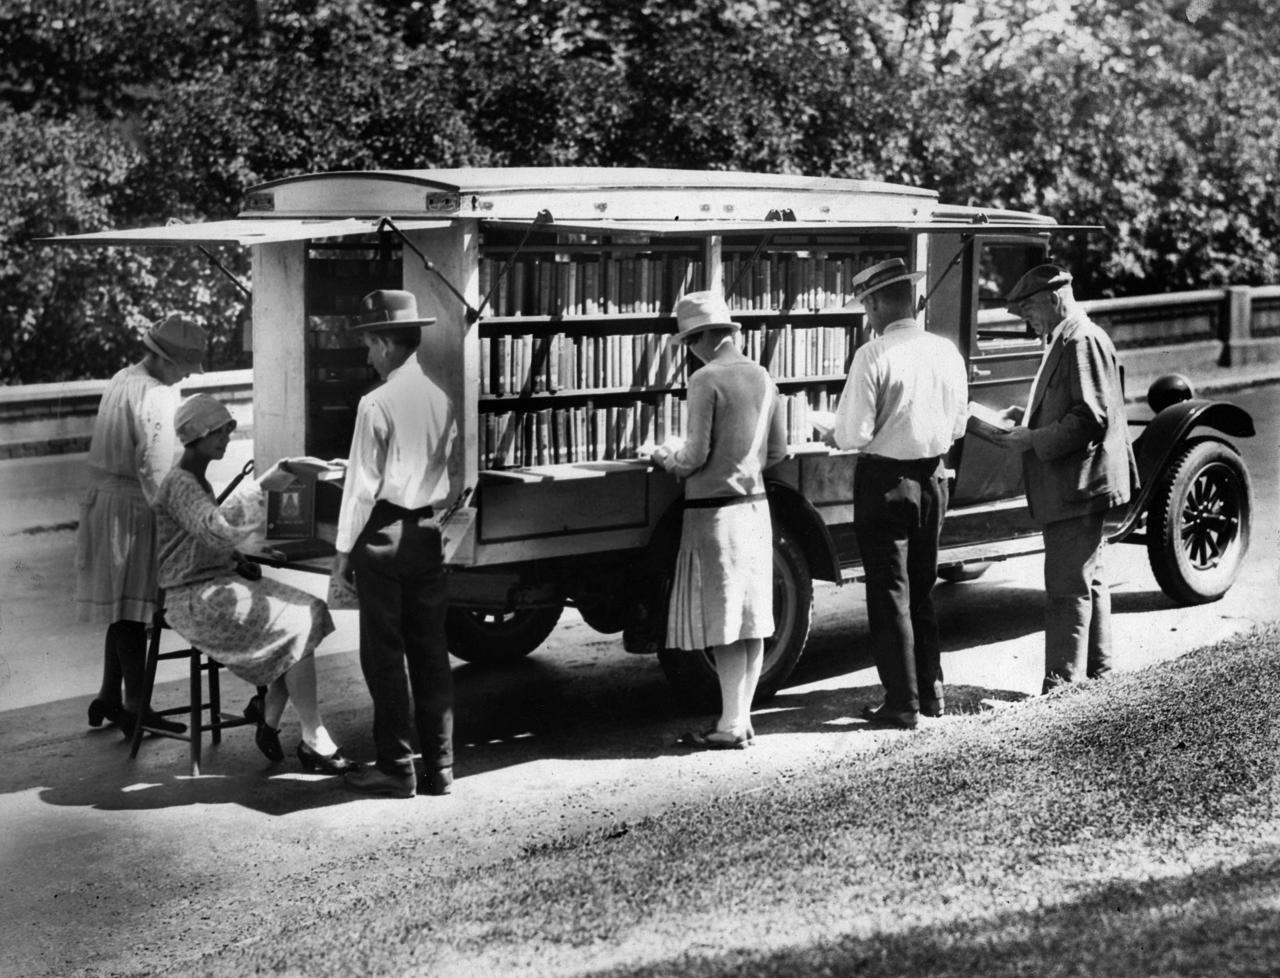 Cincinnati Public Library bookmobile, 1927